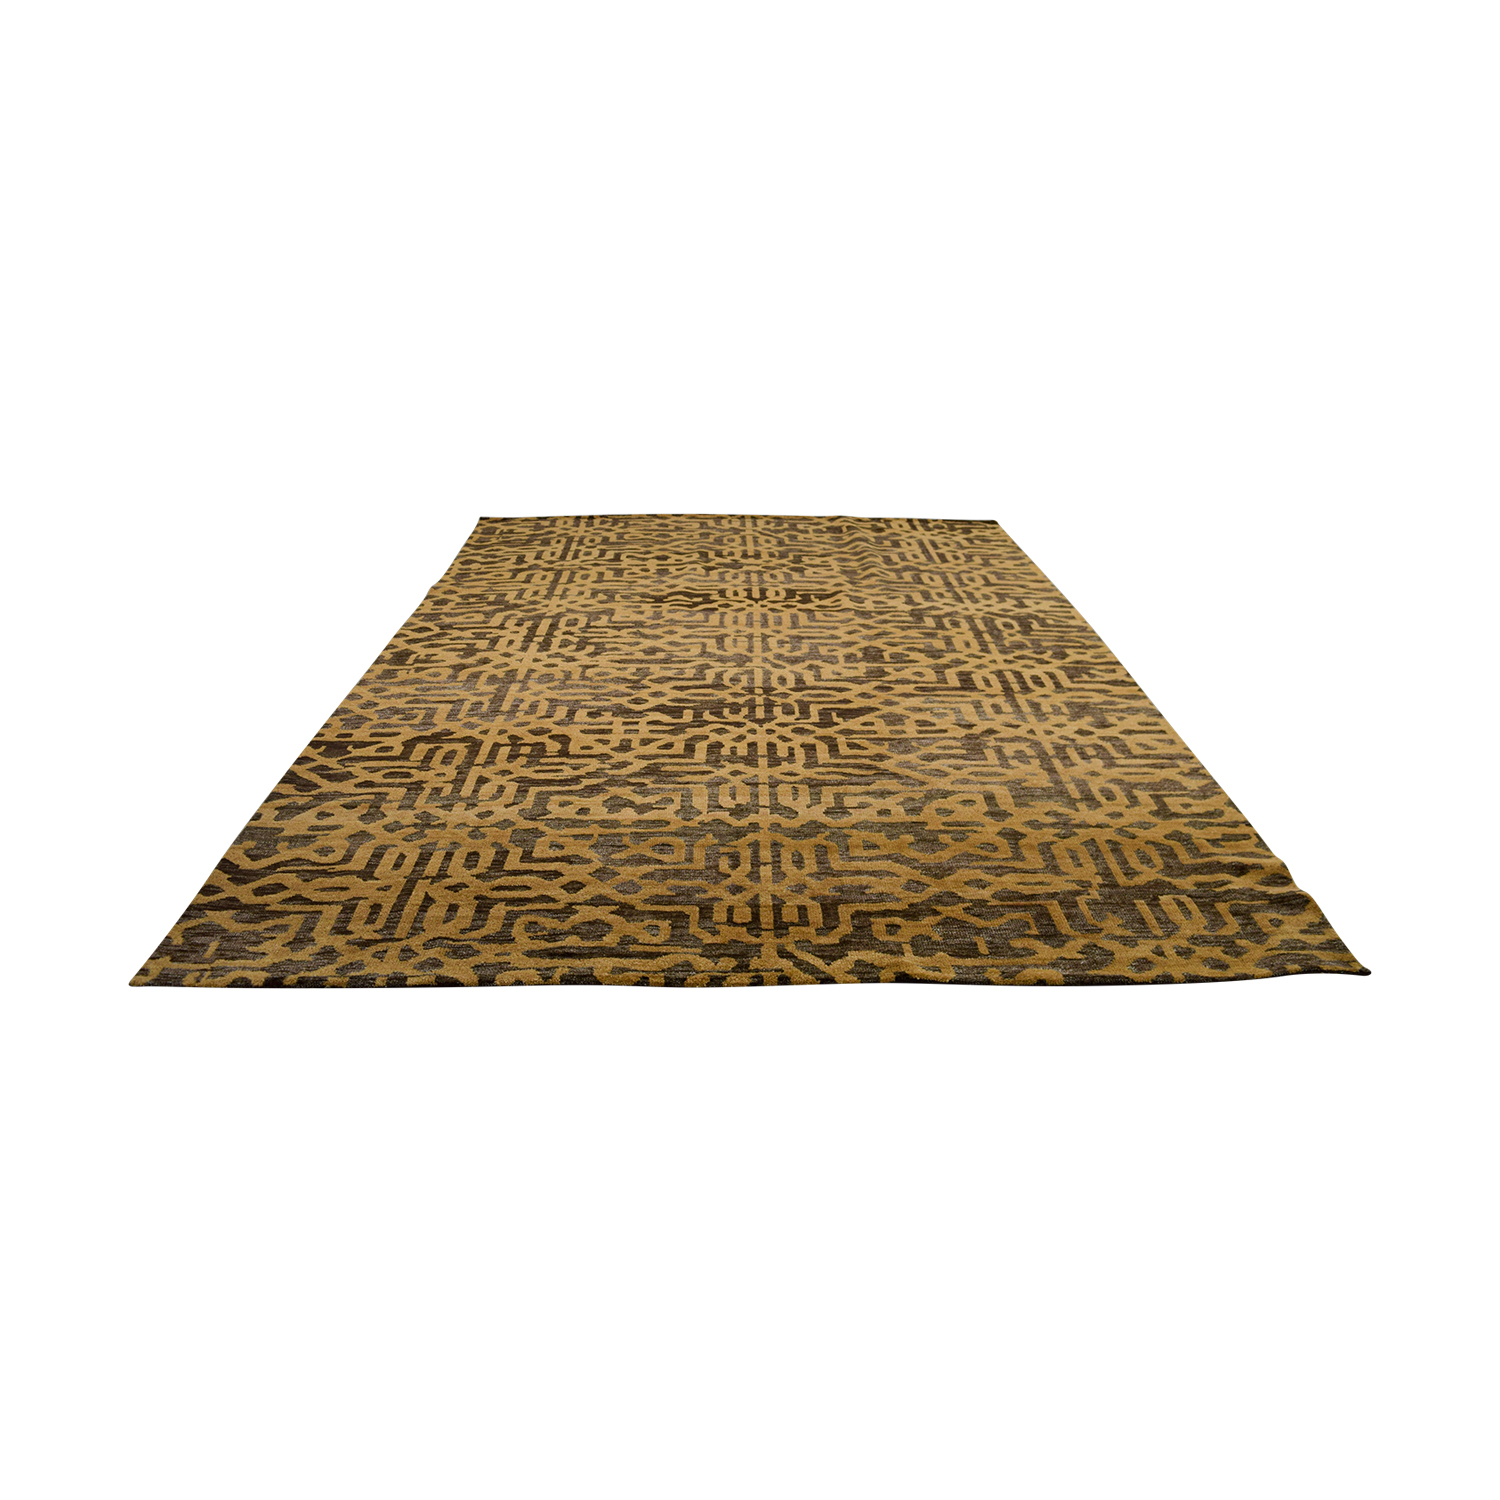 Obeetee Obeetee Lattice Brown and Tan Wool Rug White/Grey